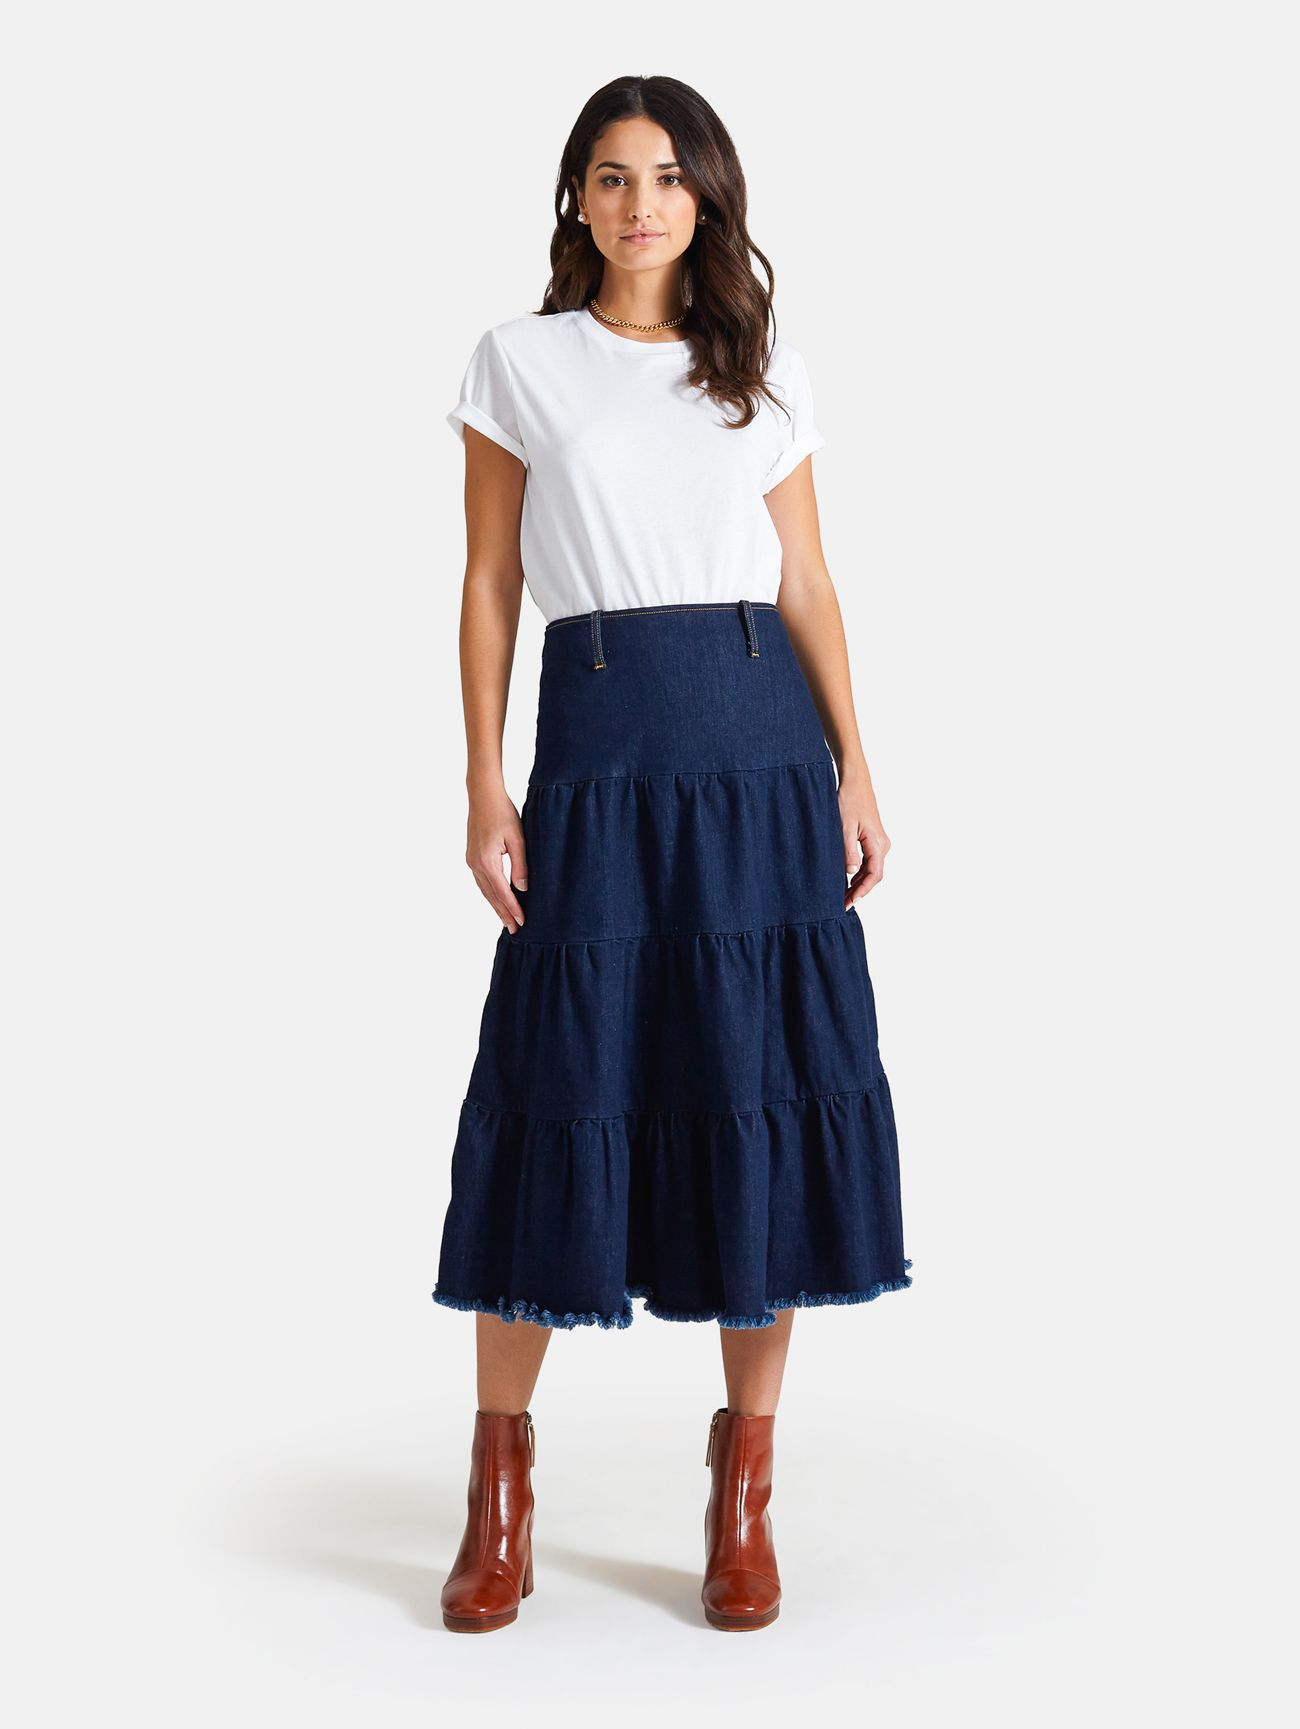 GIPSY LONG SKIRT RINSE WASH NAVY BLUE